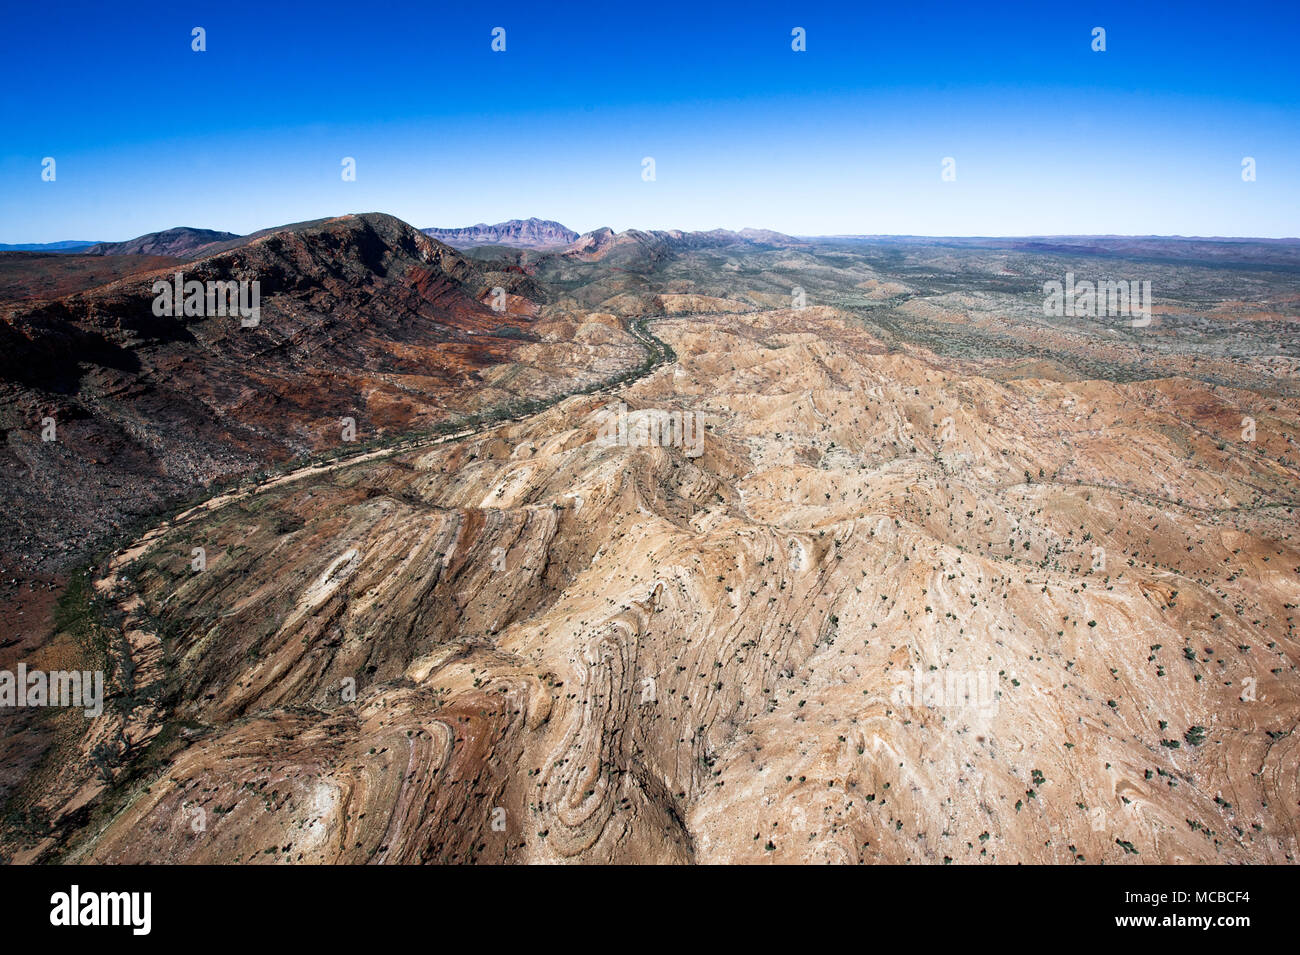 Australia: Aerial shot taken from the helicopter over the Glen Helen desert Photo: Alessandro Bosio/Alamy Stock Photo